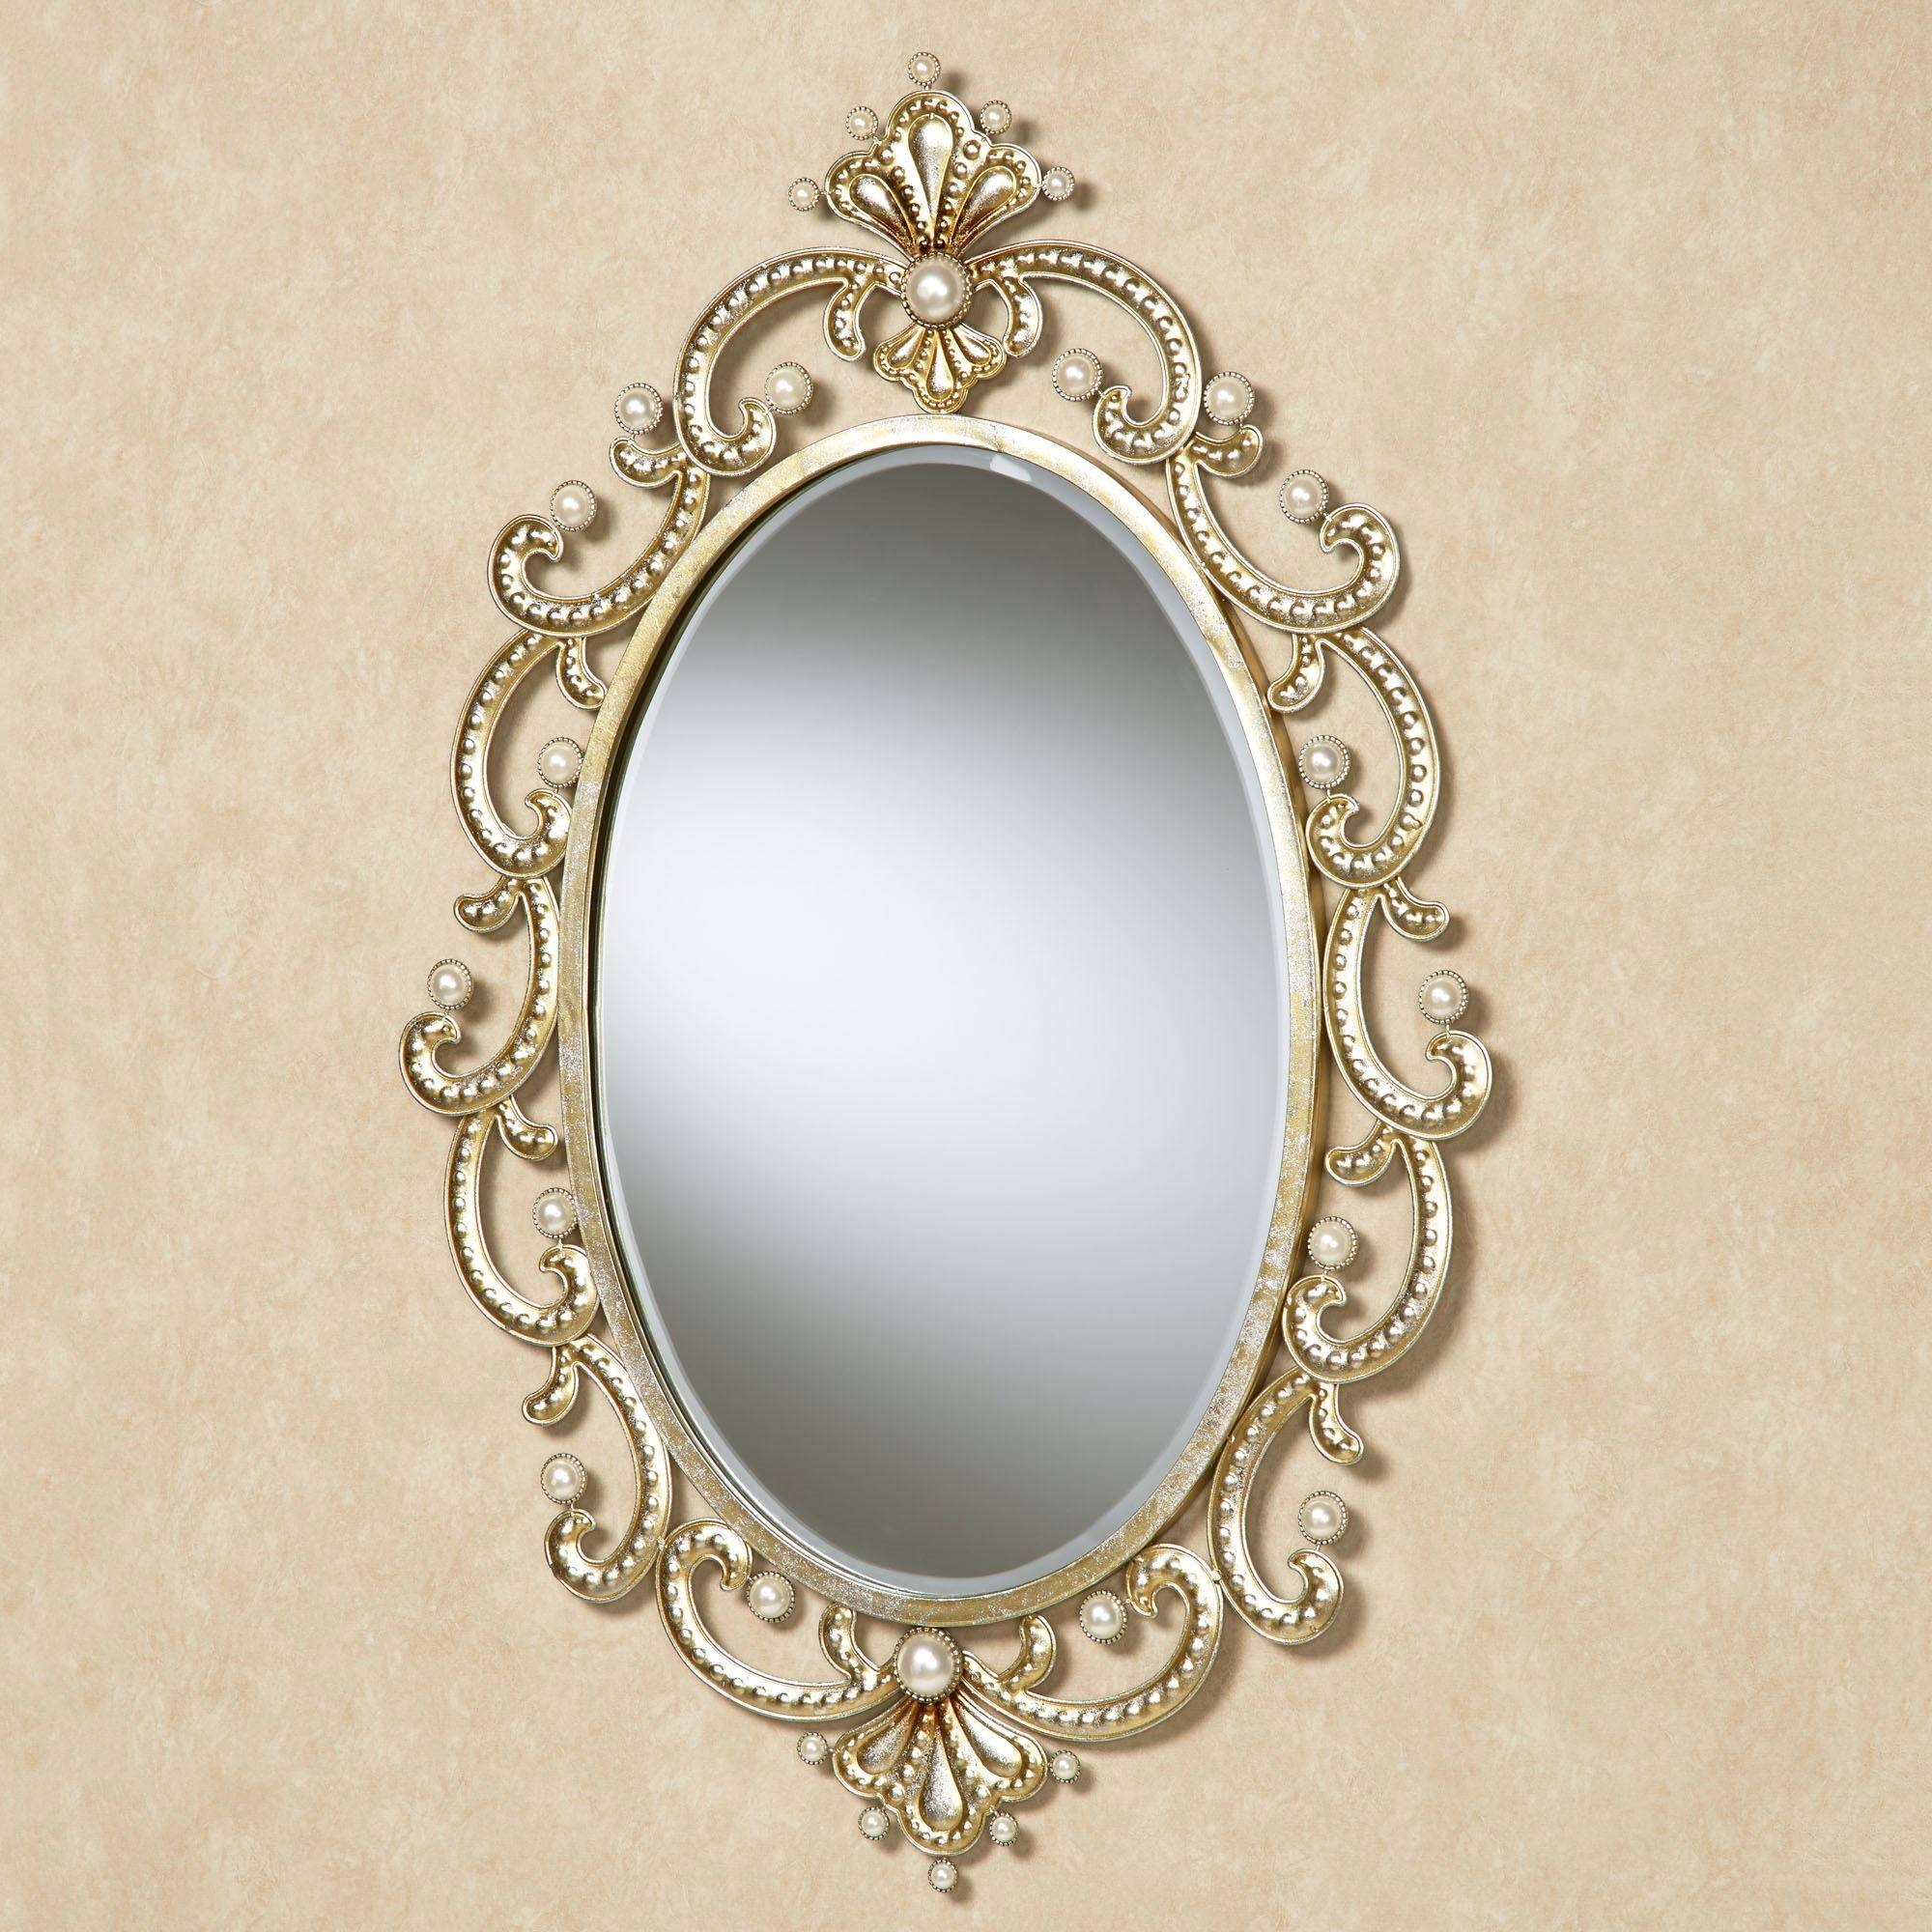 Giorgianna Pearl Oval Wall Mirror With Regard To Oval Wall Mirrors (View 9 of 25)